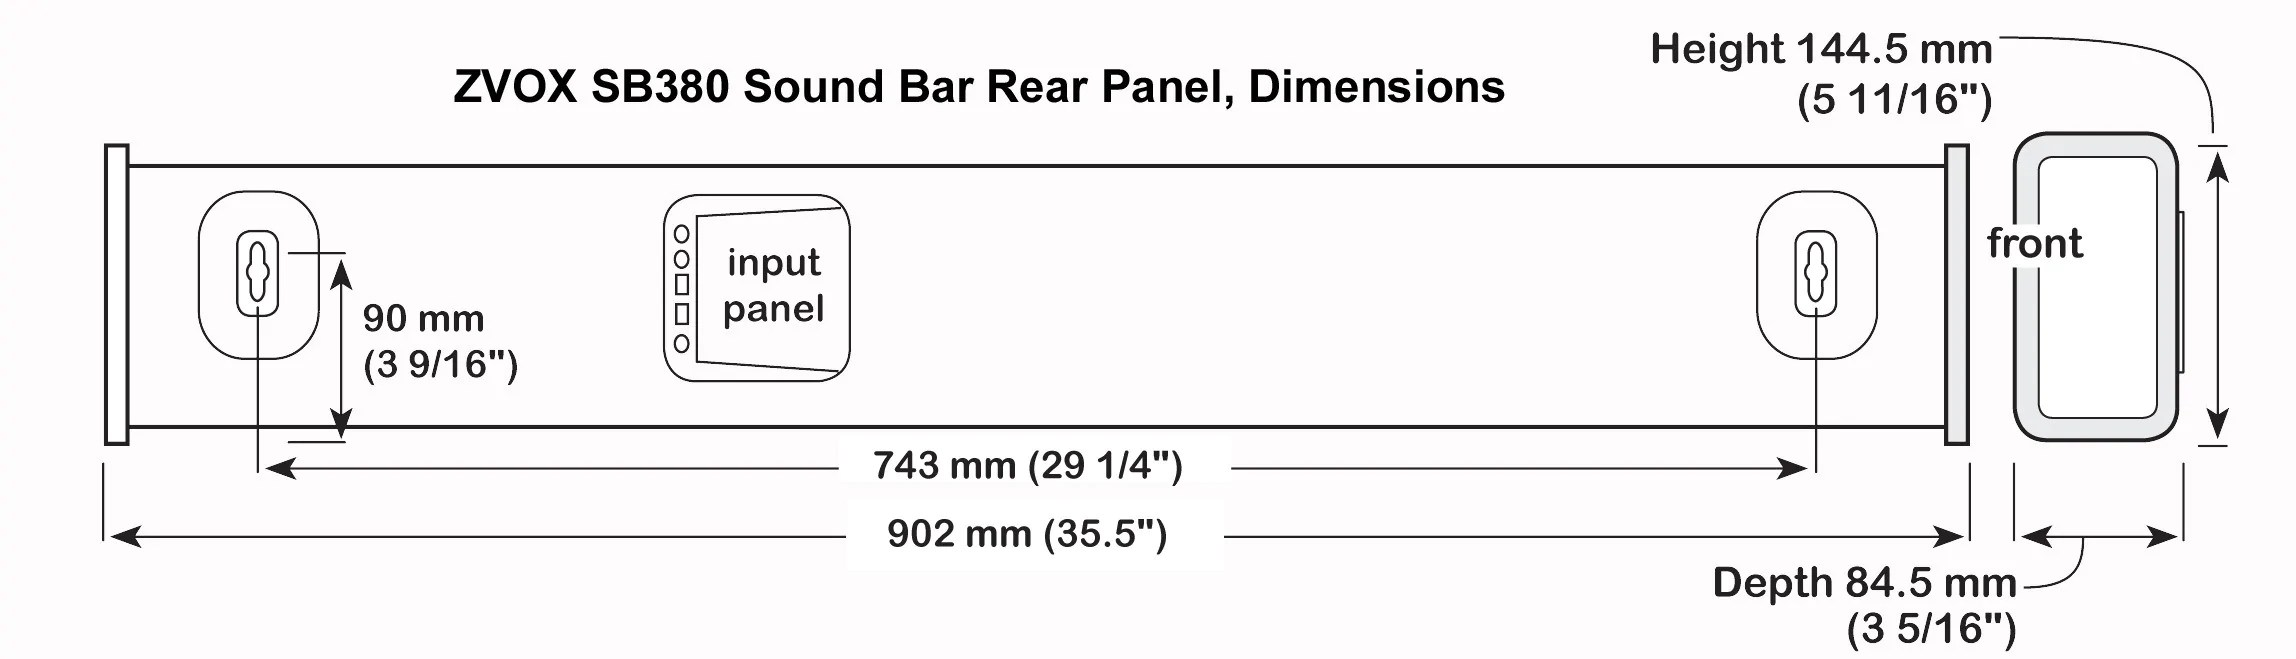 hight resolution of click here to download sb380 sound bar back panel illustration and dimensions